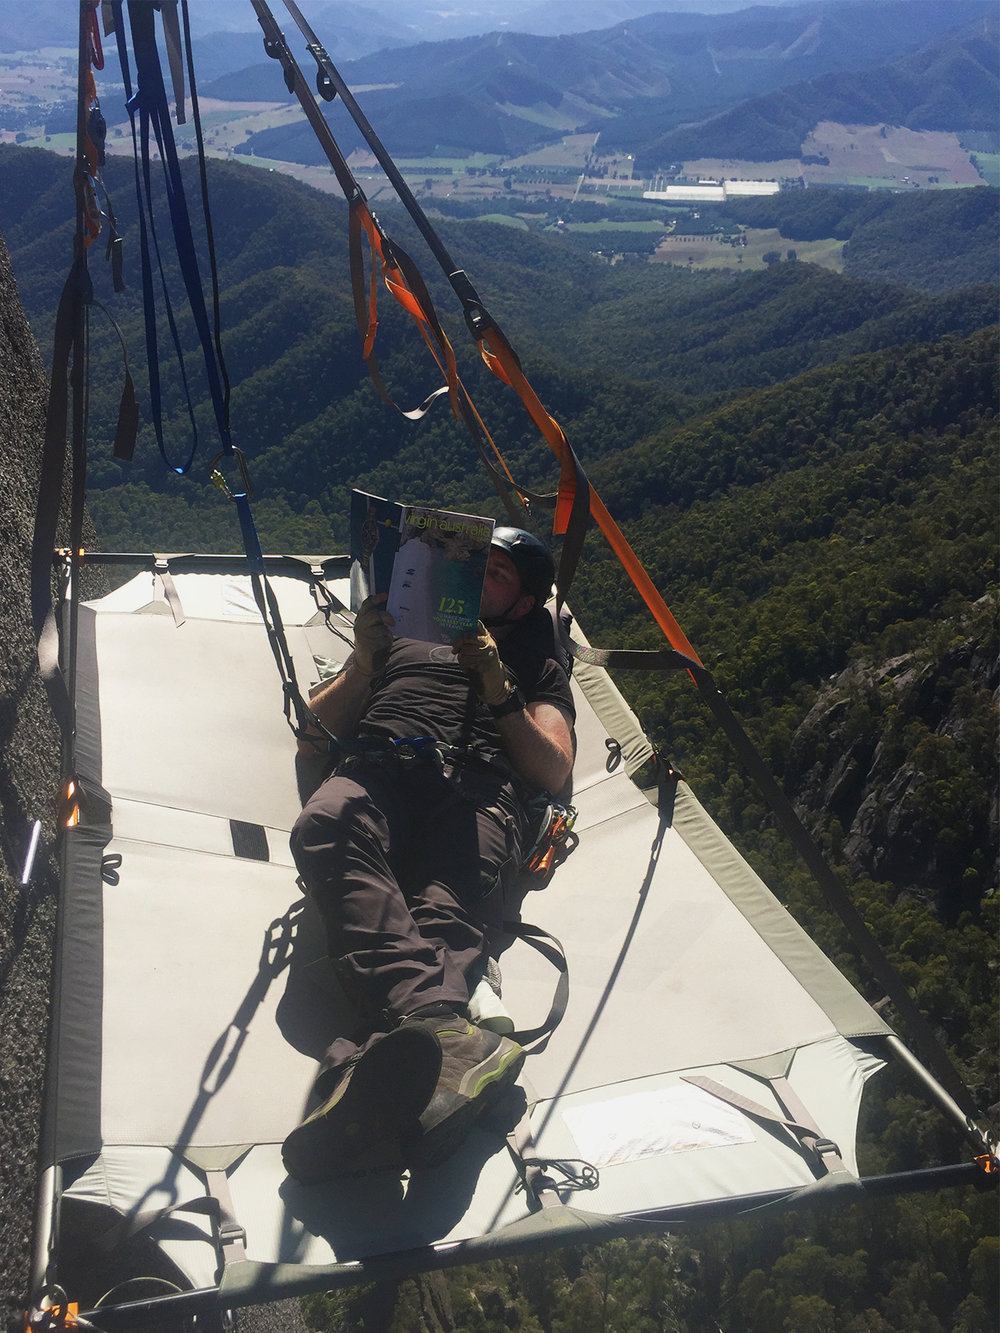 Jan 9 2018 & Insights from Beyond the Edge - Sleeping on a Portaledge ...